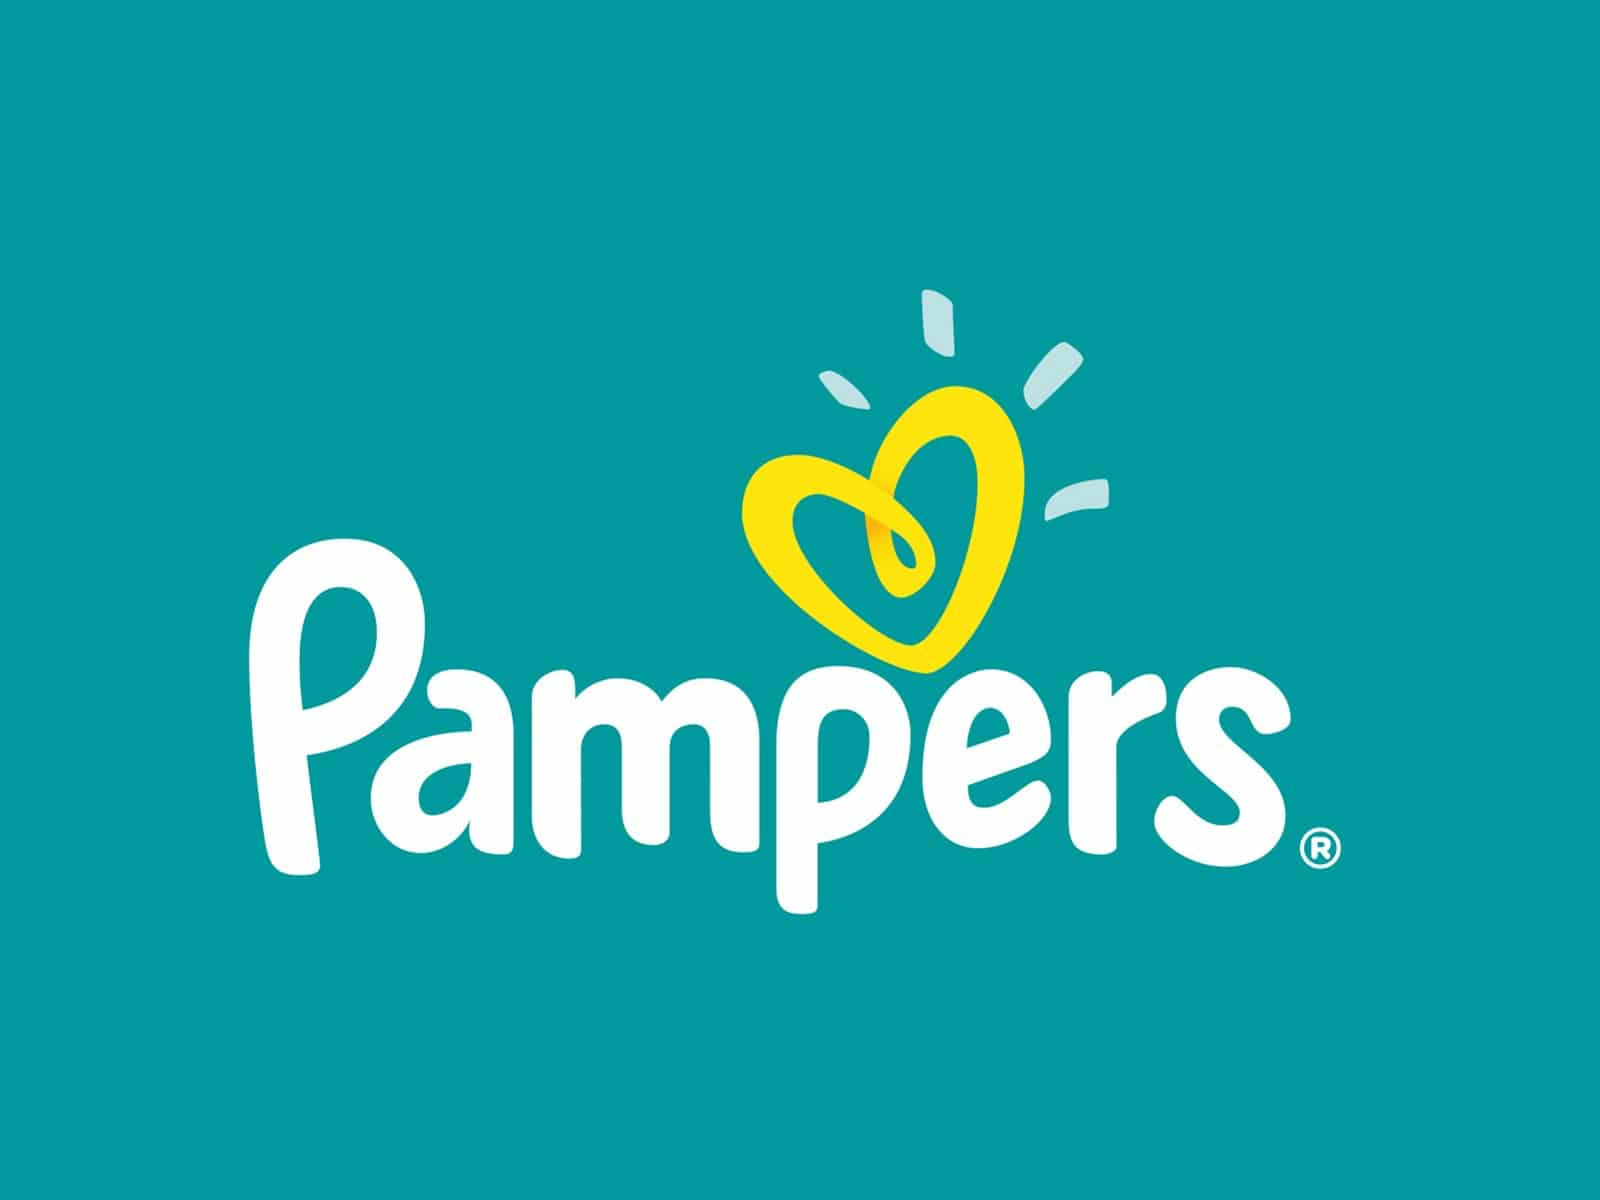 Pampers new